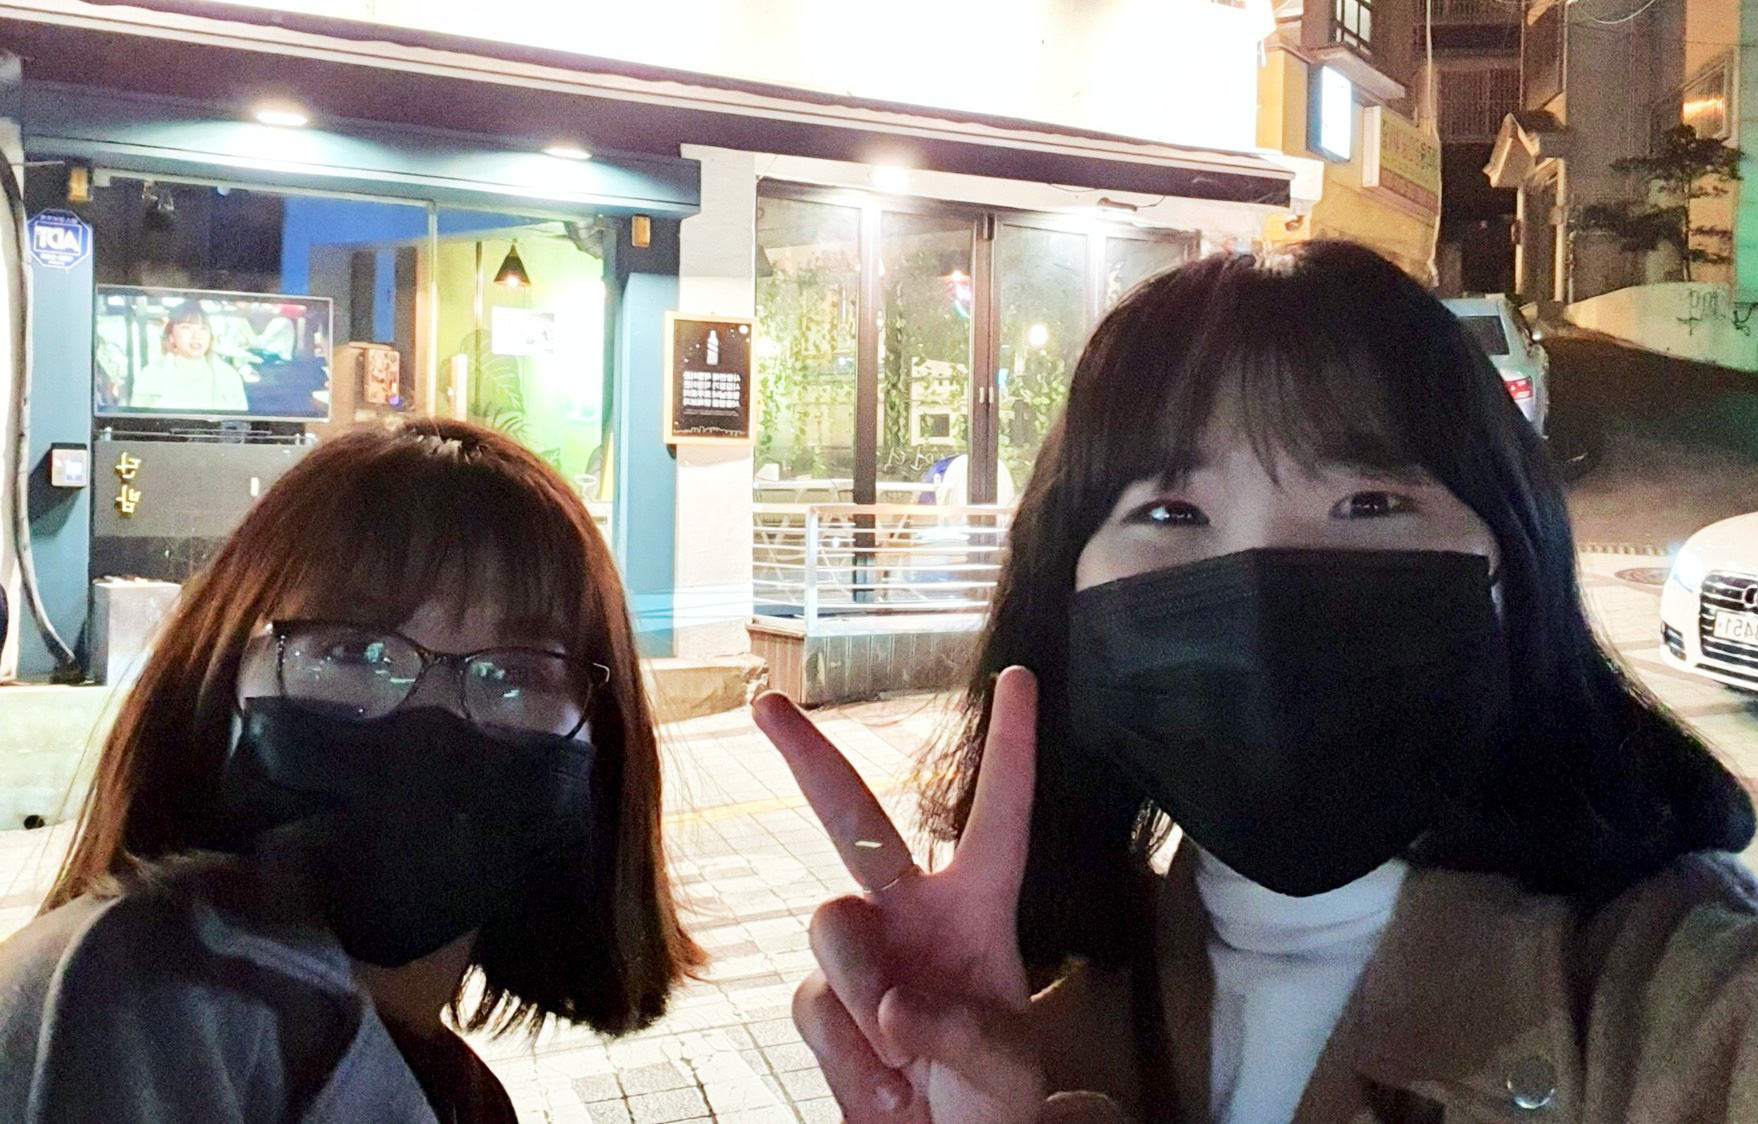 Le Dung (right) and Ngoc Anh (left), two Vietnamese international students, take a 'we-fie' outside the DanBam bar-restaurant in Itaewon Ward, Yongsan District, Seoul, South Korea. Photo: Le Dung / Tuoi Tre